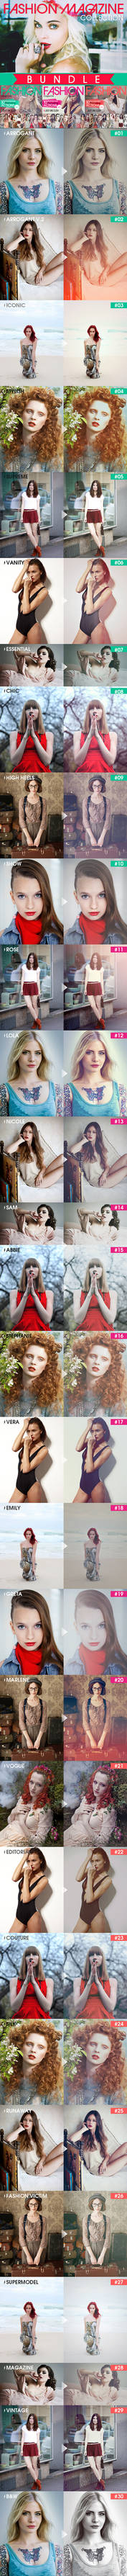 Fashion Magazine Actions -BUNDLE-